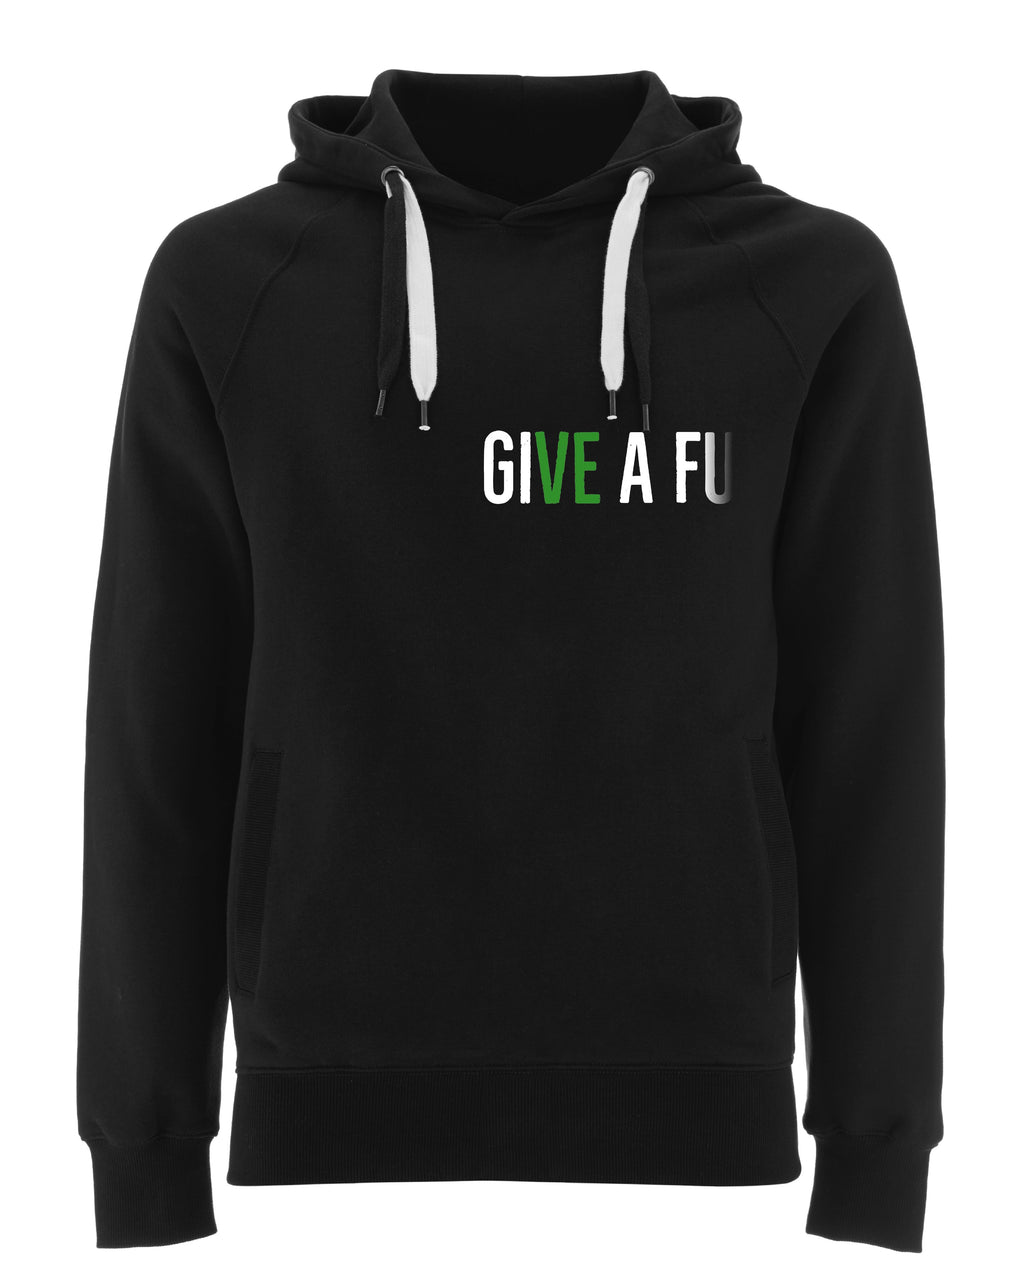 GIVE A FU Original Unisex Organic Cotton Hoodie